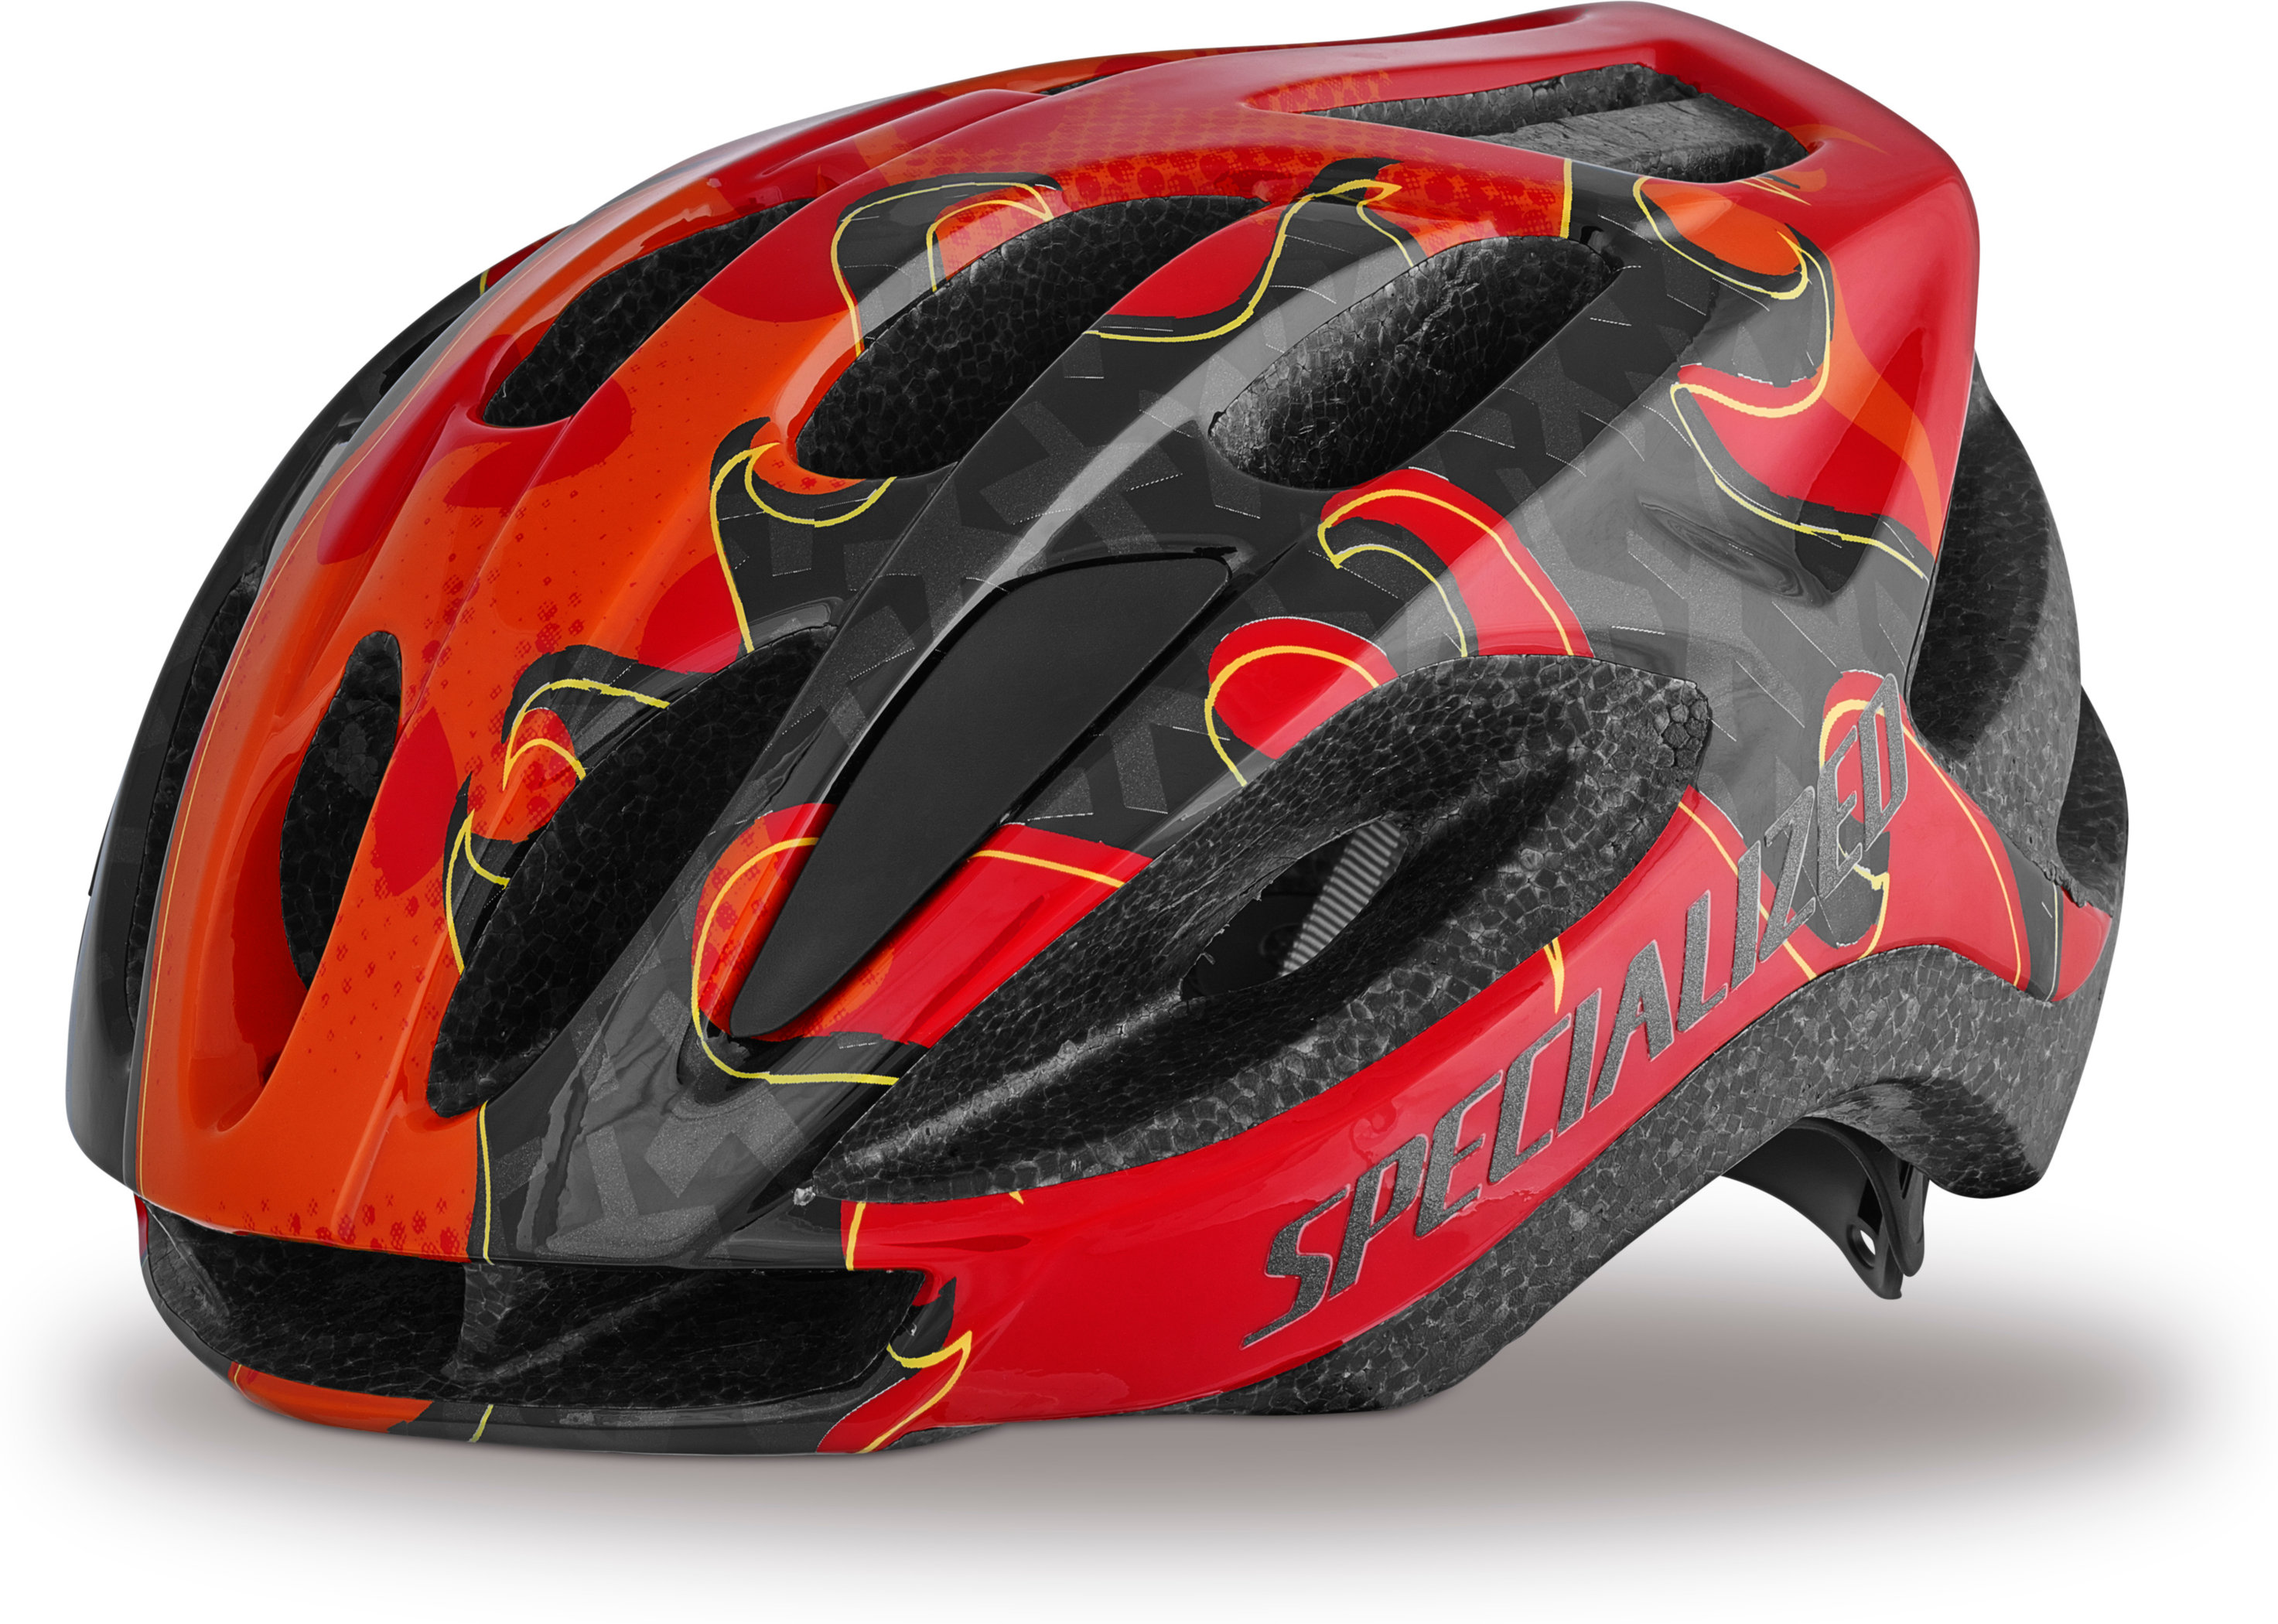 SPECIALIZED FLASH HLMT CE RED FLAME YTH - Pulsschlag Bike+Sport